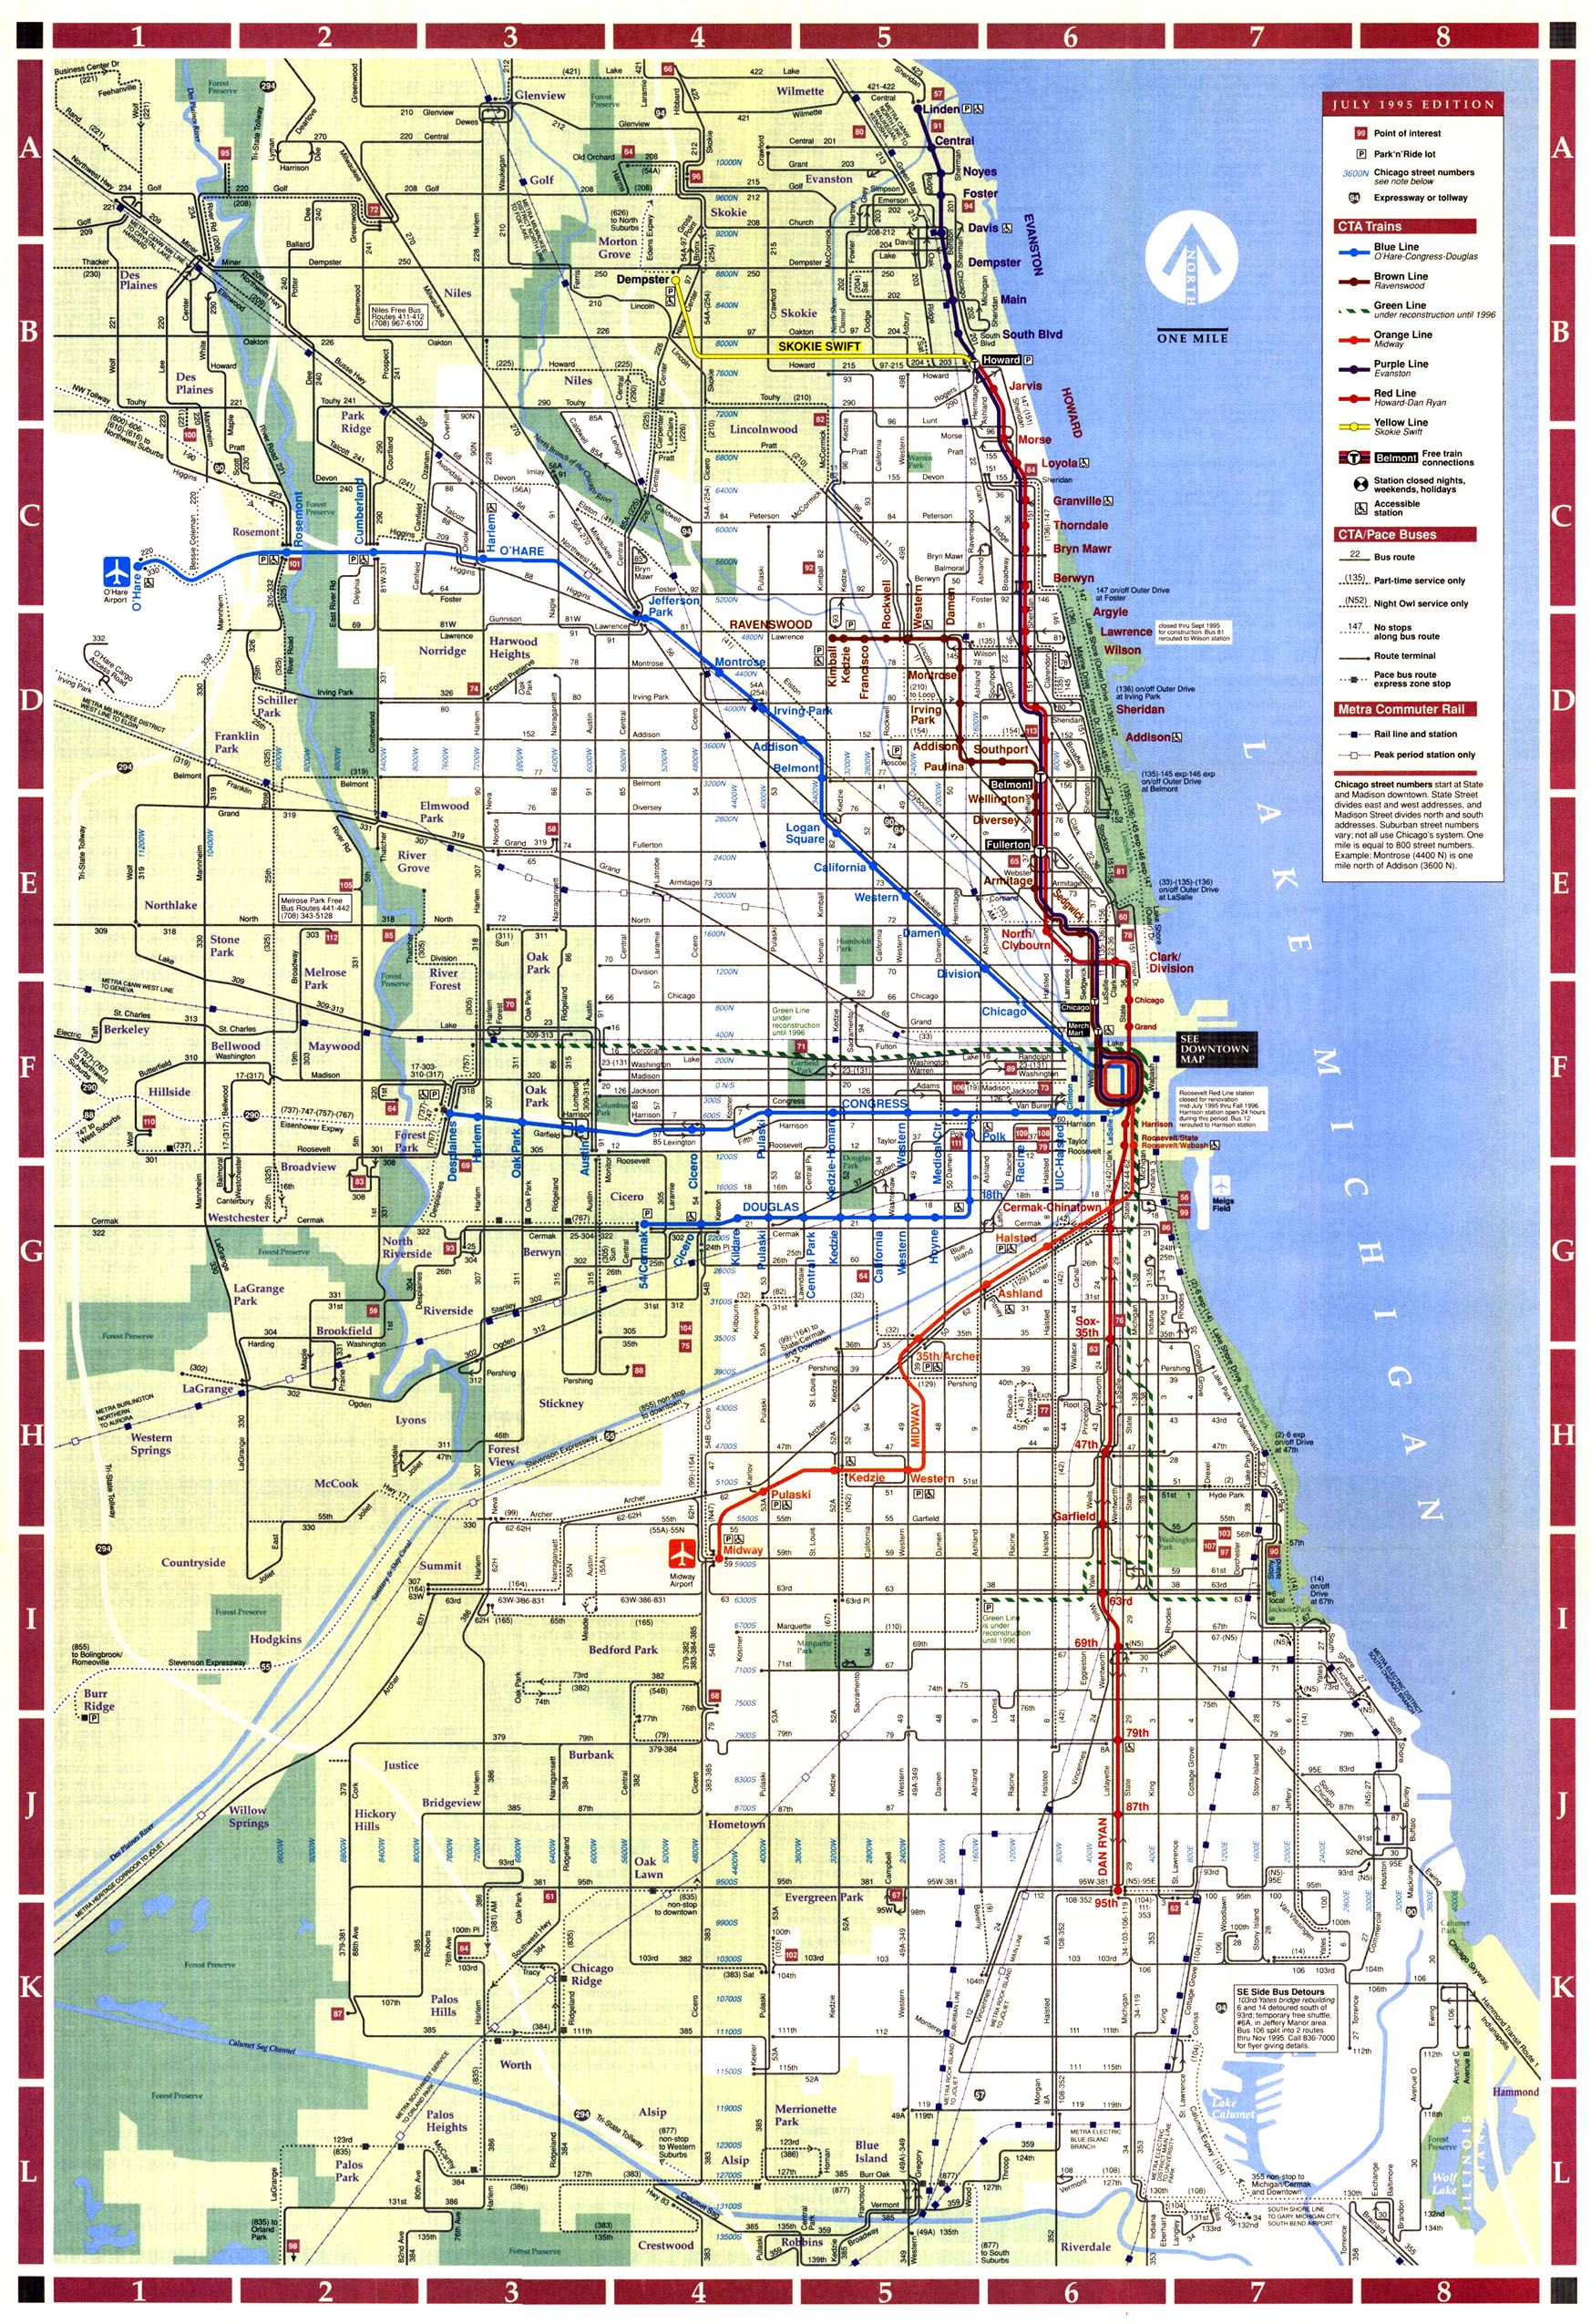 601b600e3374528e150d5e753d02fa6b 1995 cta map maps in 2018 pinterest chicago map, map and chicago